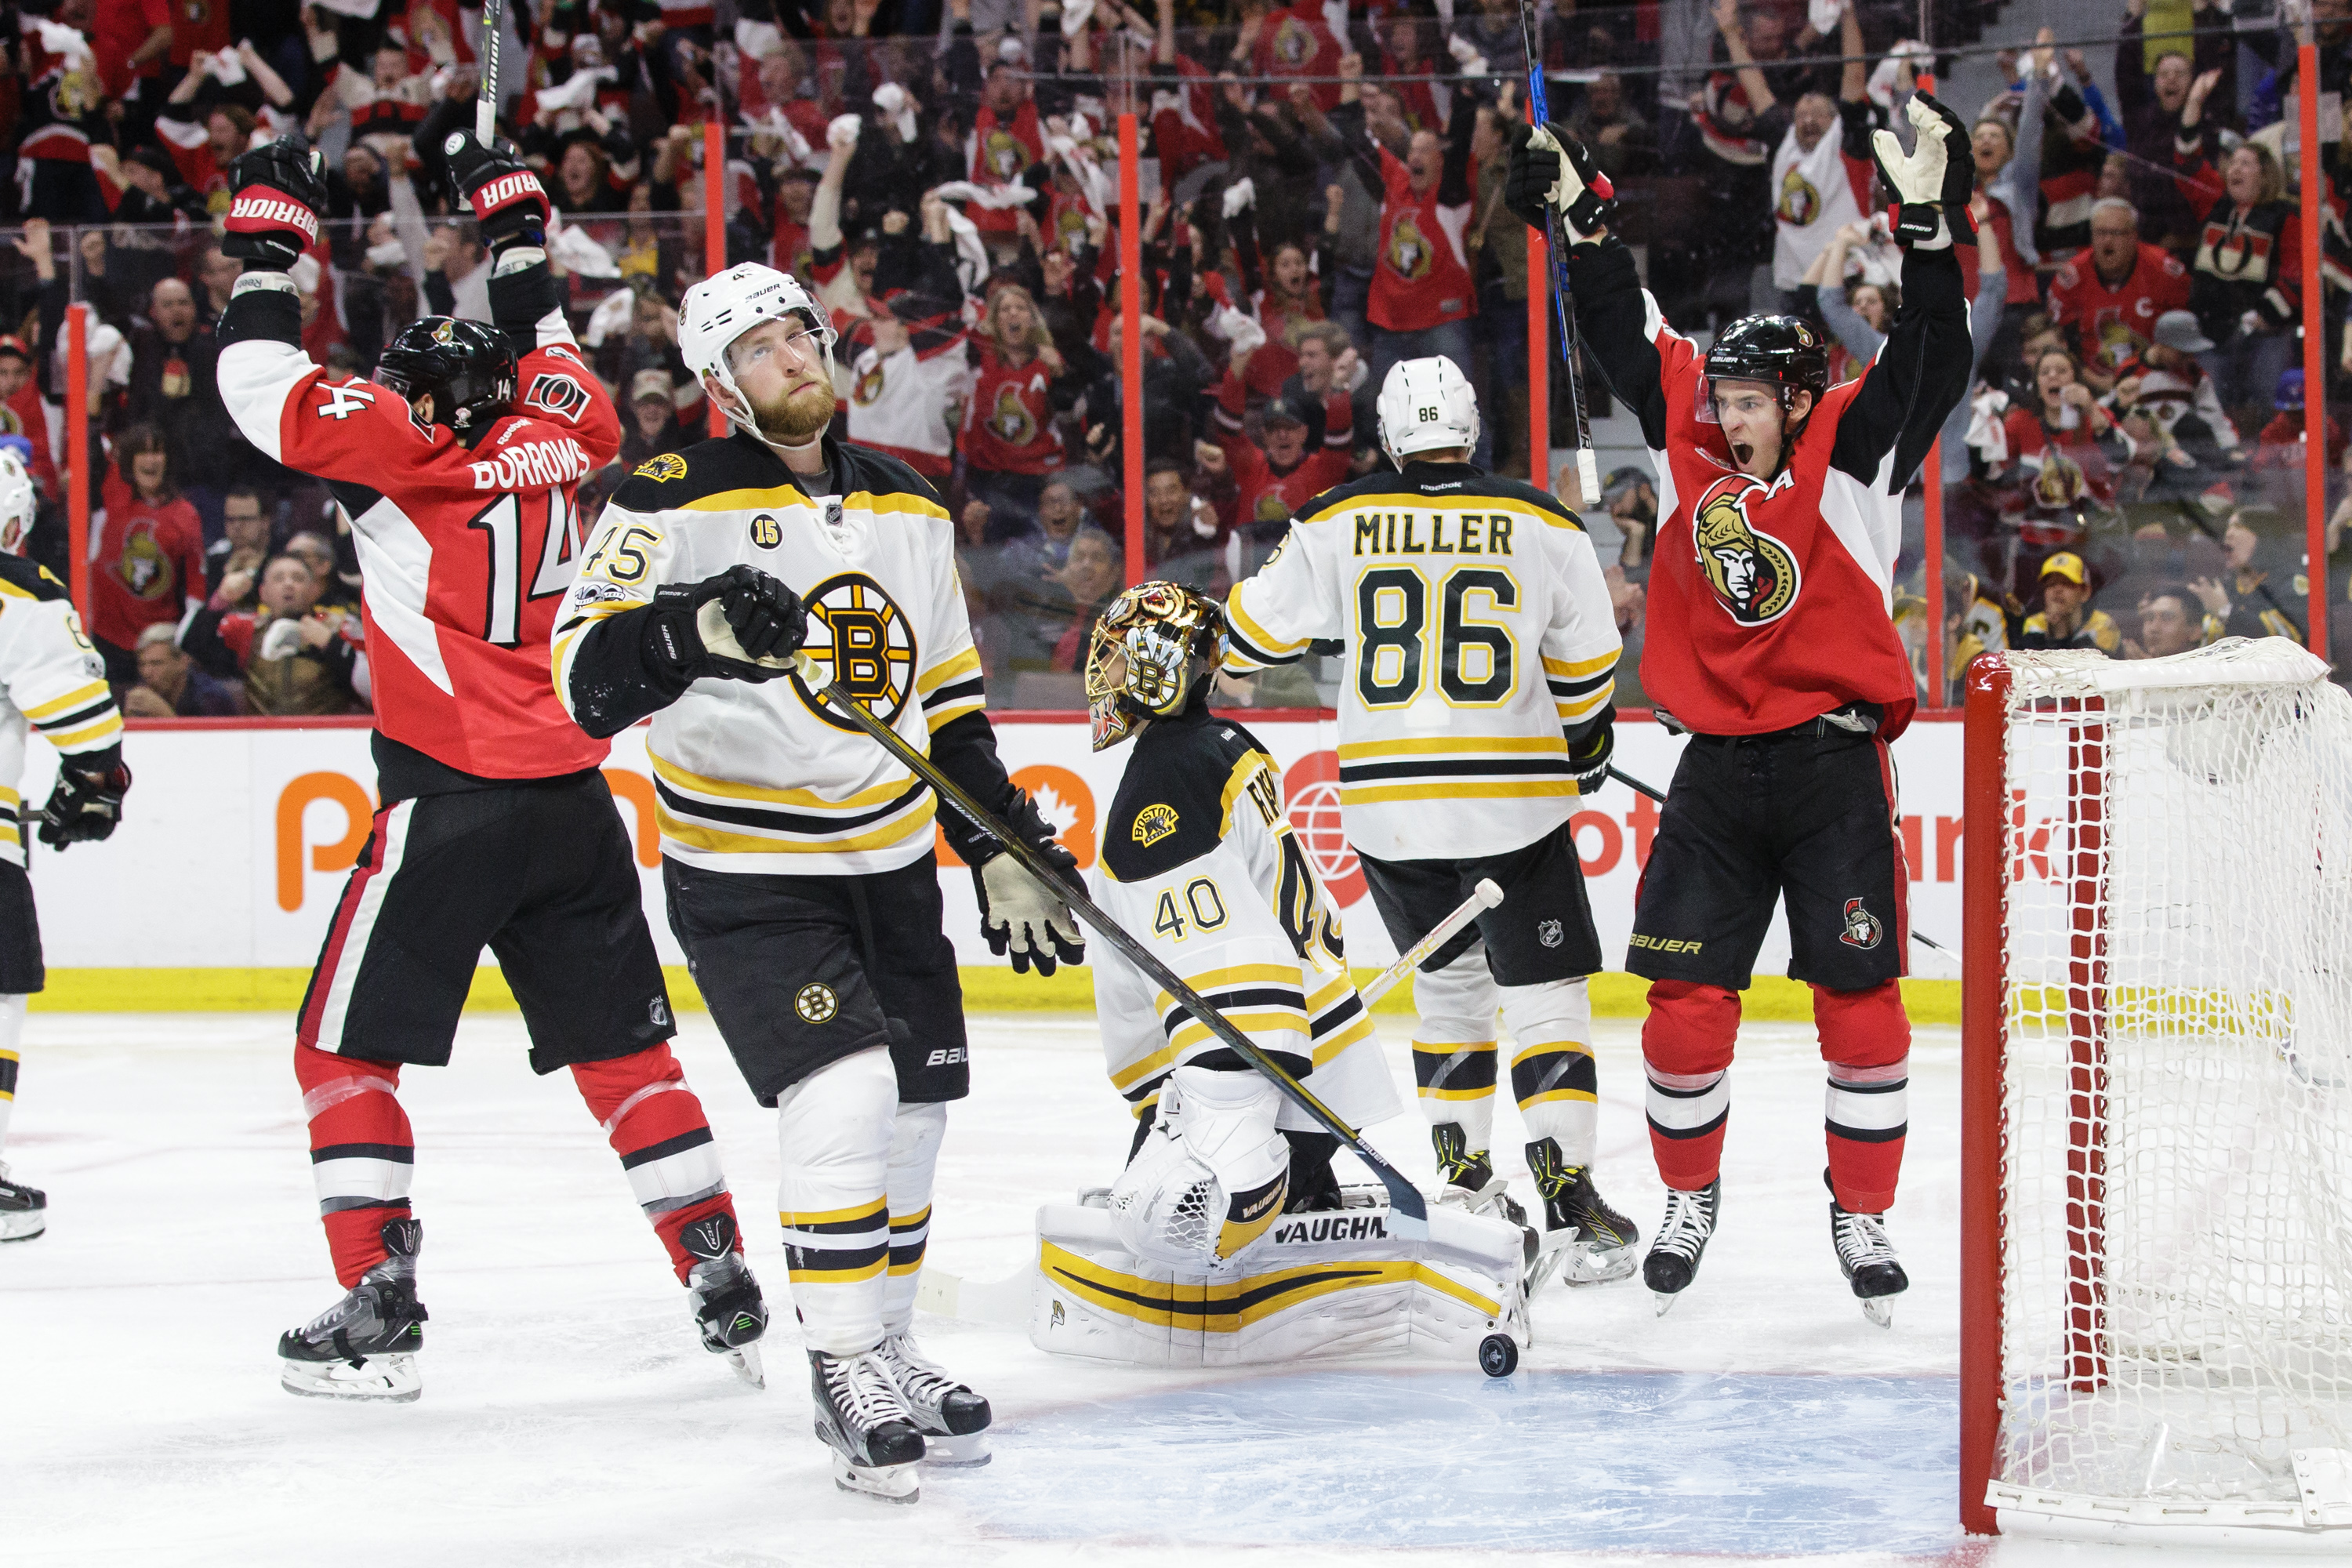 Tip-in by Ryan lifts Senators over Bruins 4-3 in overtime